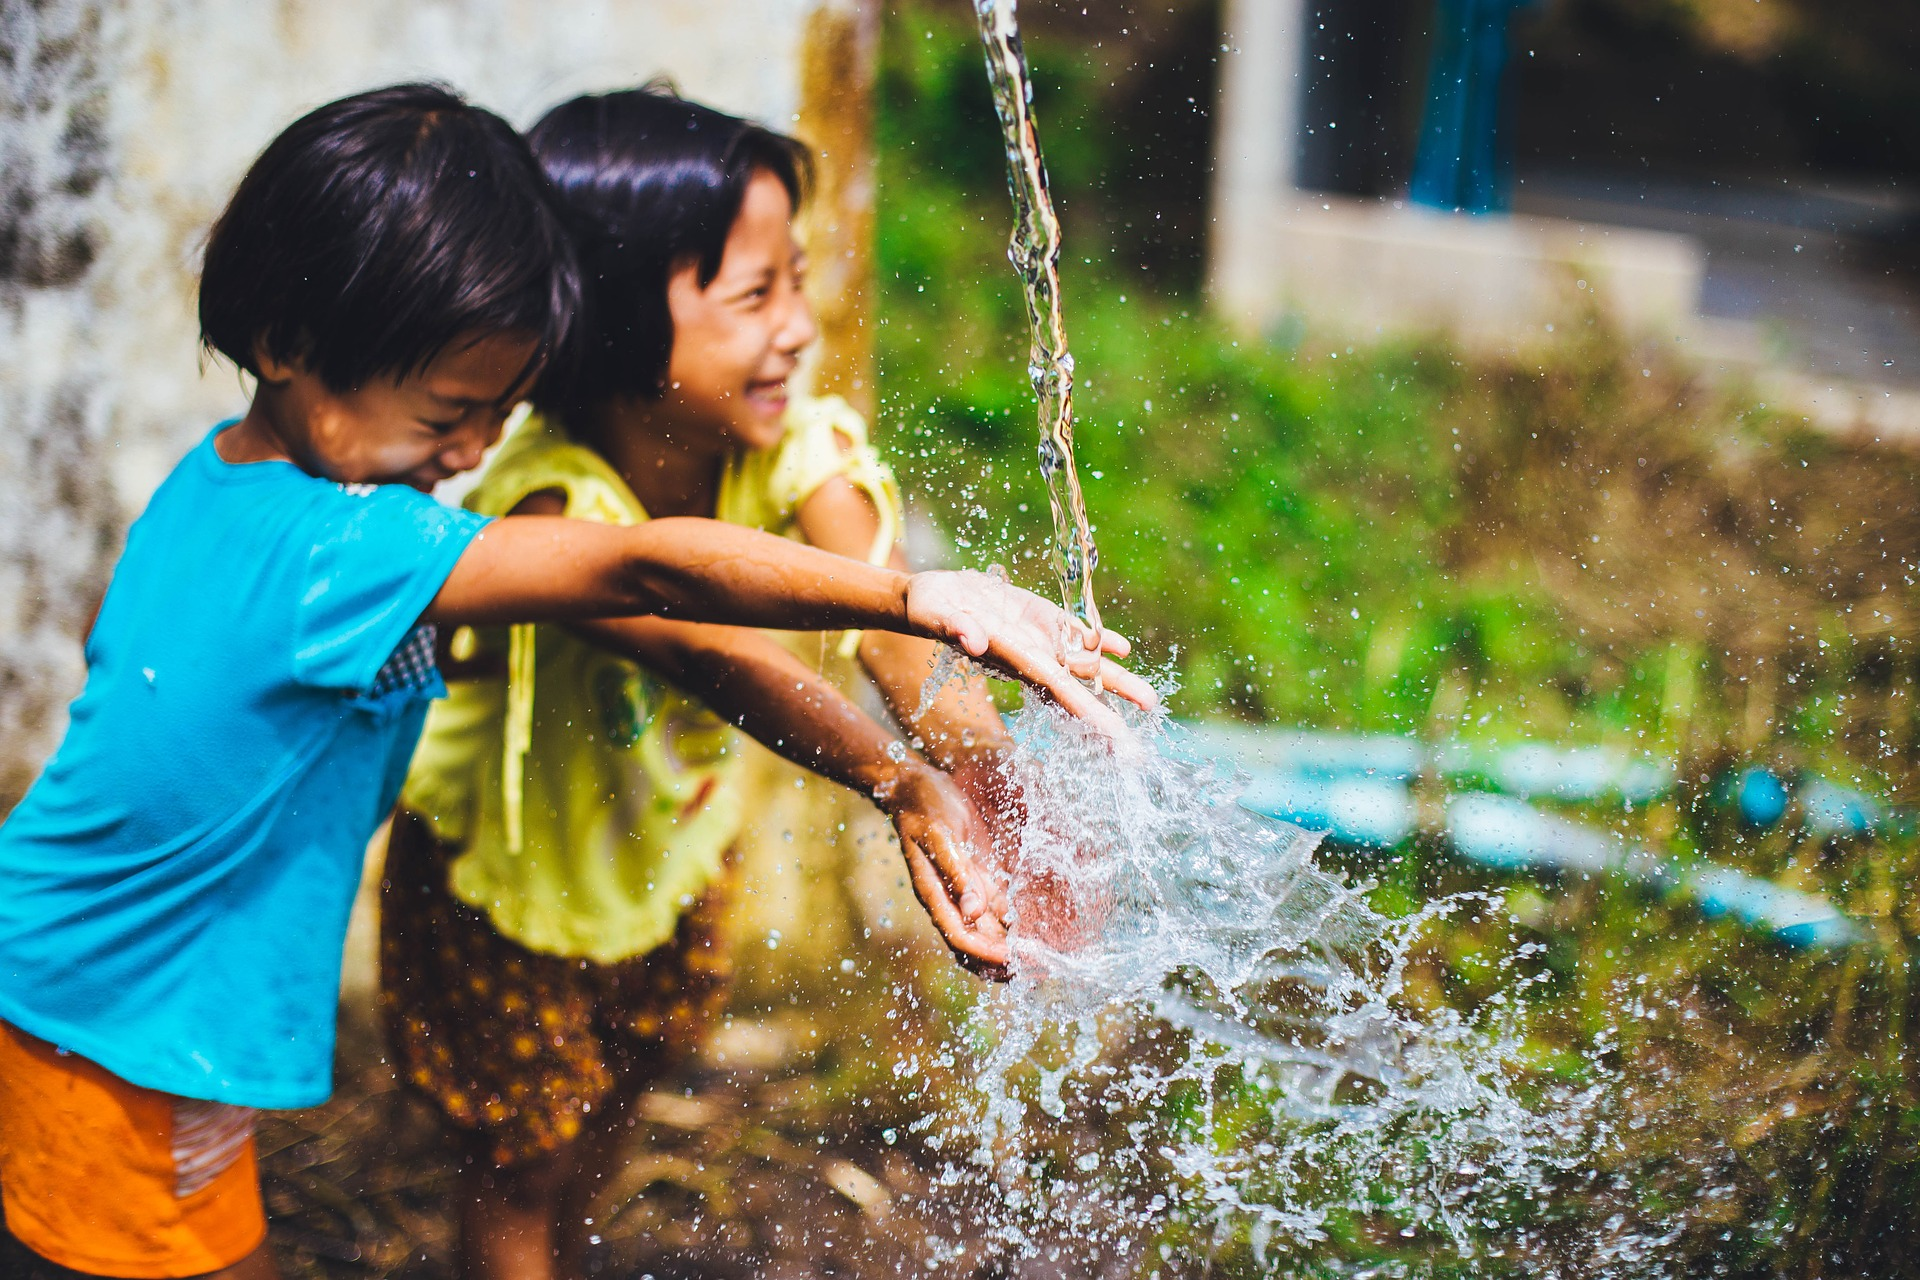 A new study of children in 35 countries found that kids whose water sheds have more tree cover are less likely to get diarrheal disease.